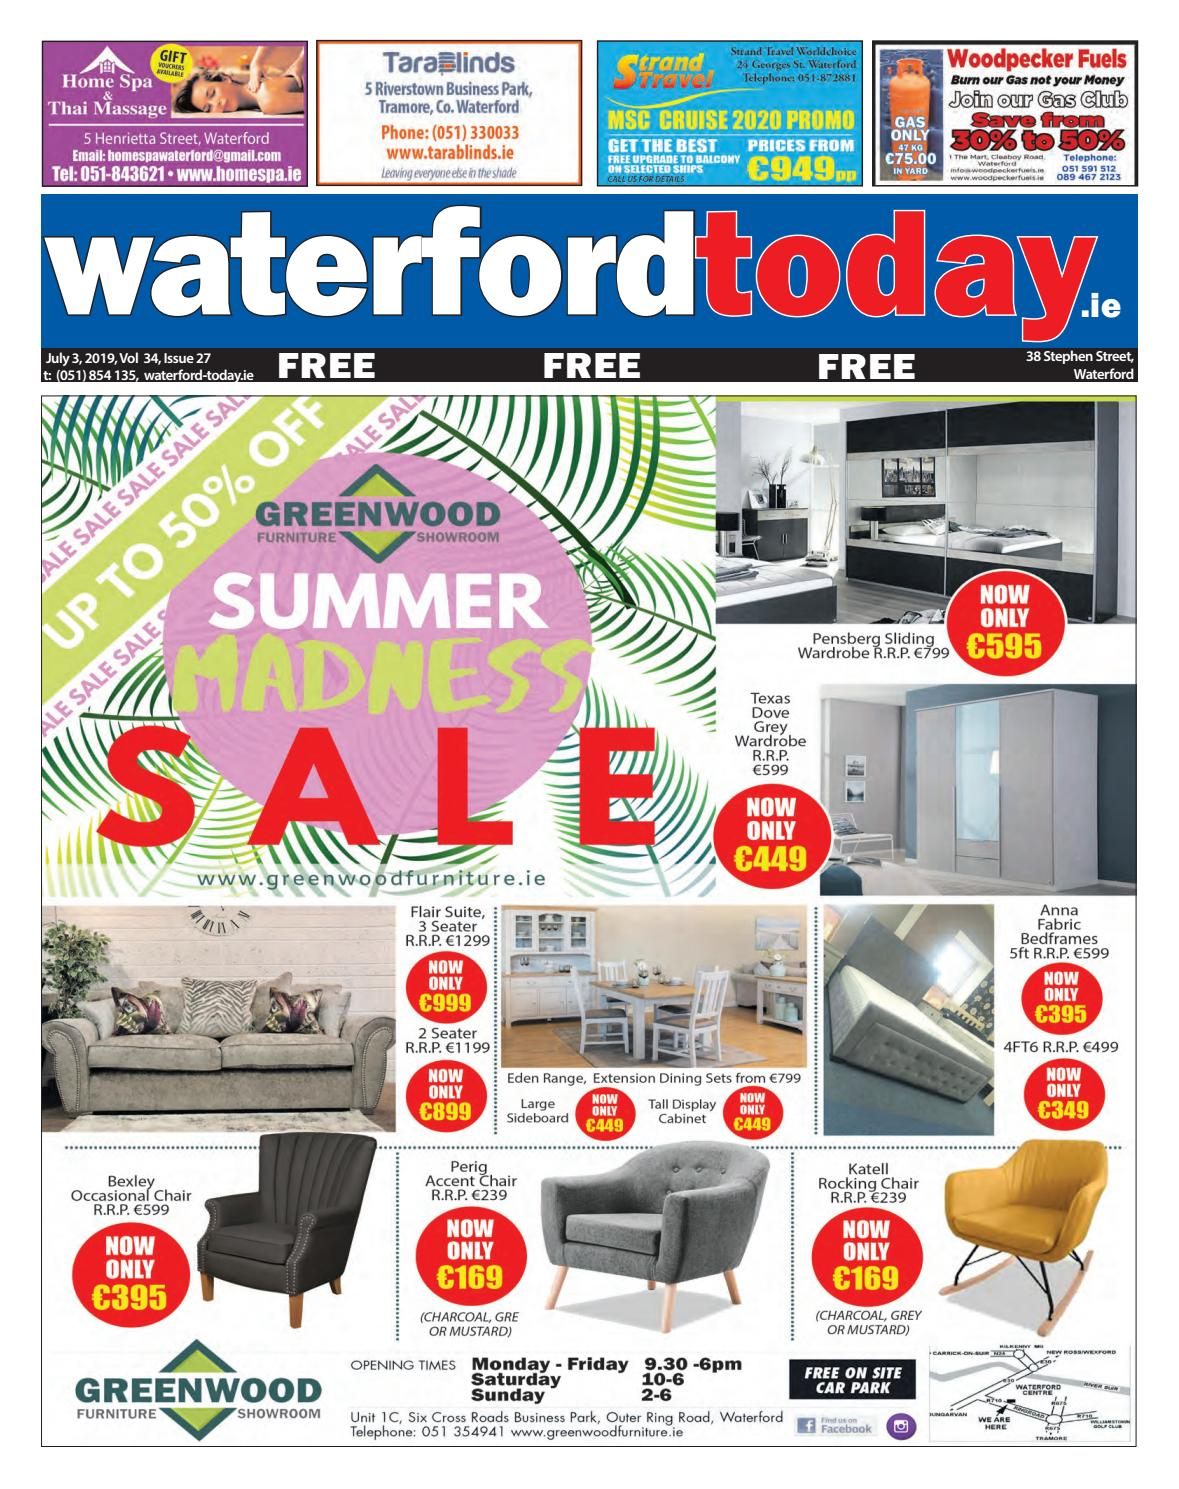 Waterford is Irelands oldest city, - EBS - The Mortgage